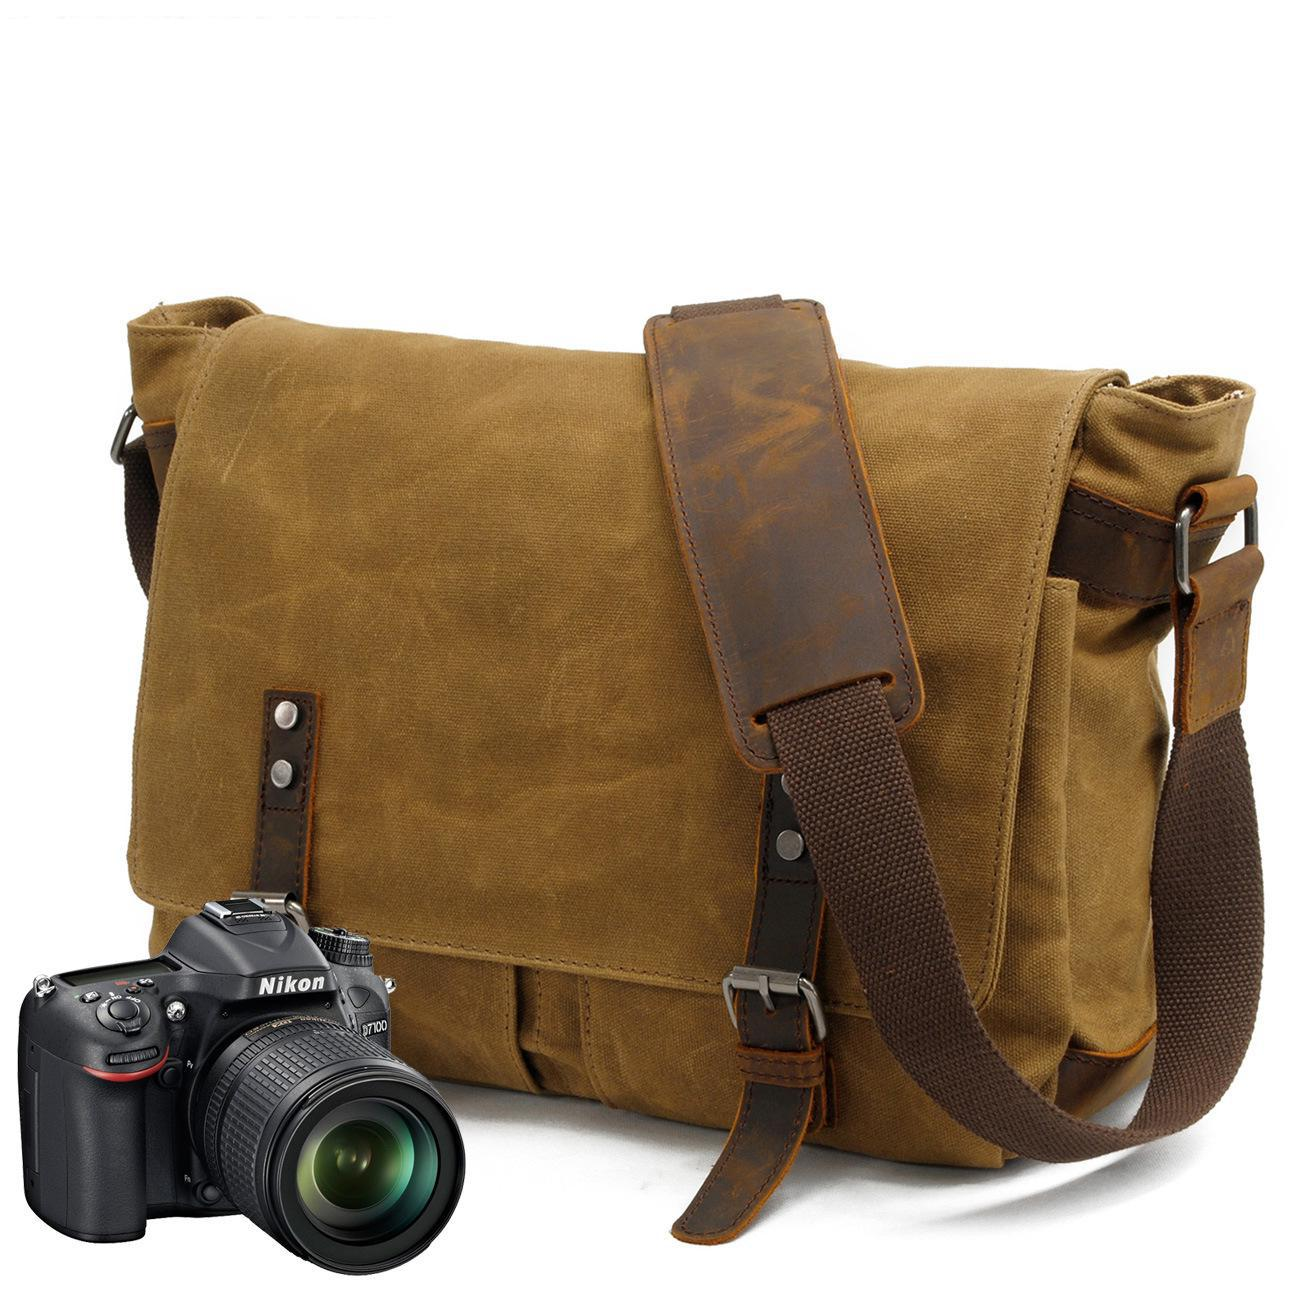 New Men Messenger Bag Oil Wax Waterproof Canvas Crossbody Shoulder Bag Portable Vintage Camera Handbag Travel bags High Quality high quality multifunction canvas bag men travel messenger bags men crossbody brand vintage style shoulder bag ybb070